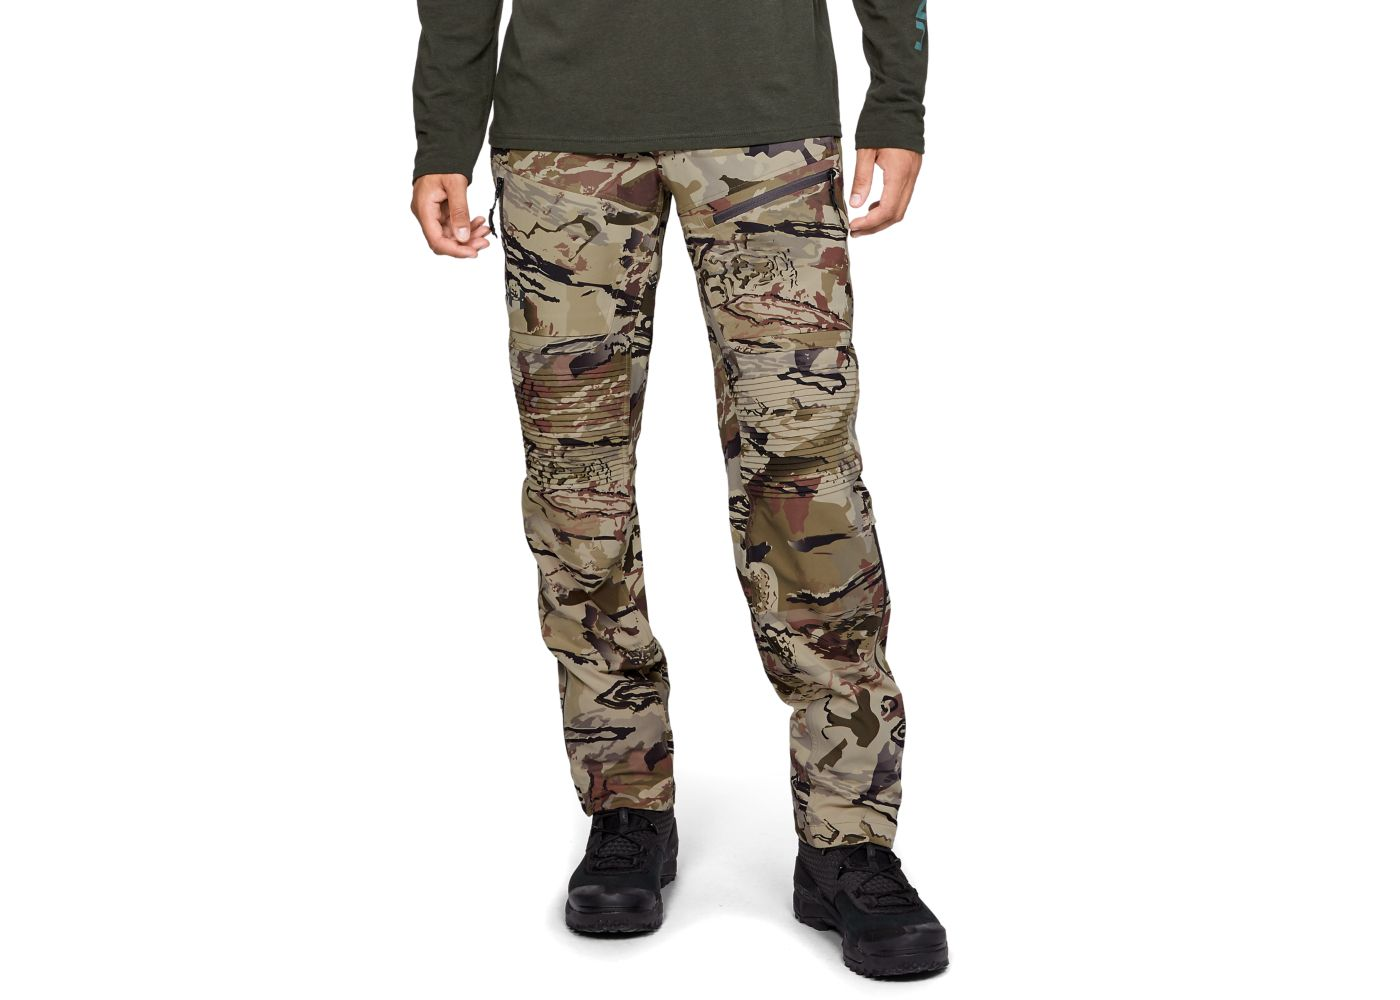 UA Men's Ridge Reaper Raider Pants